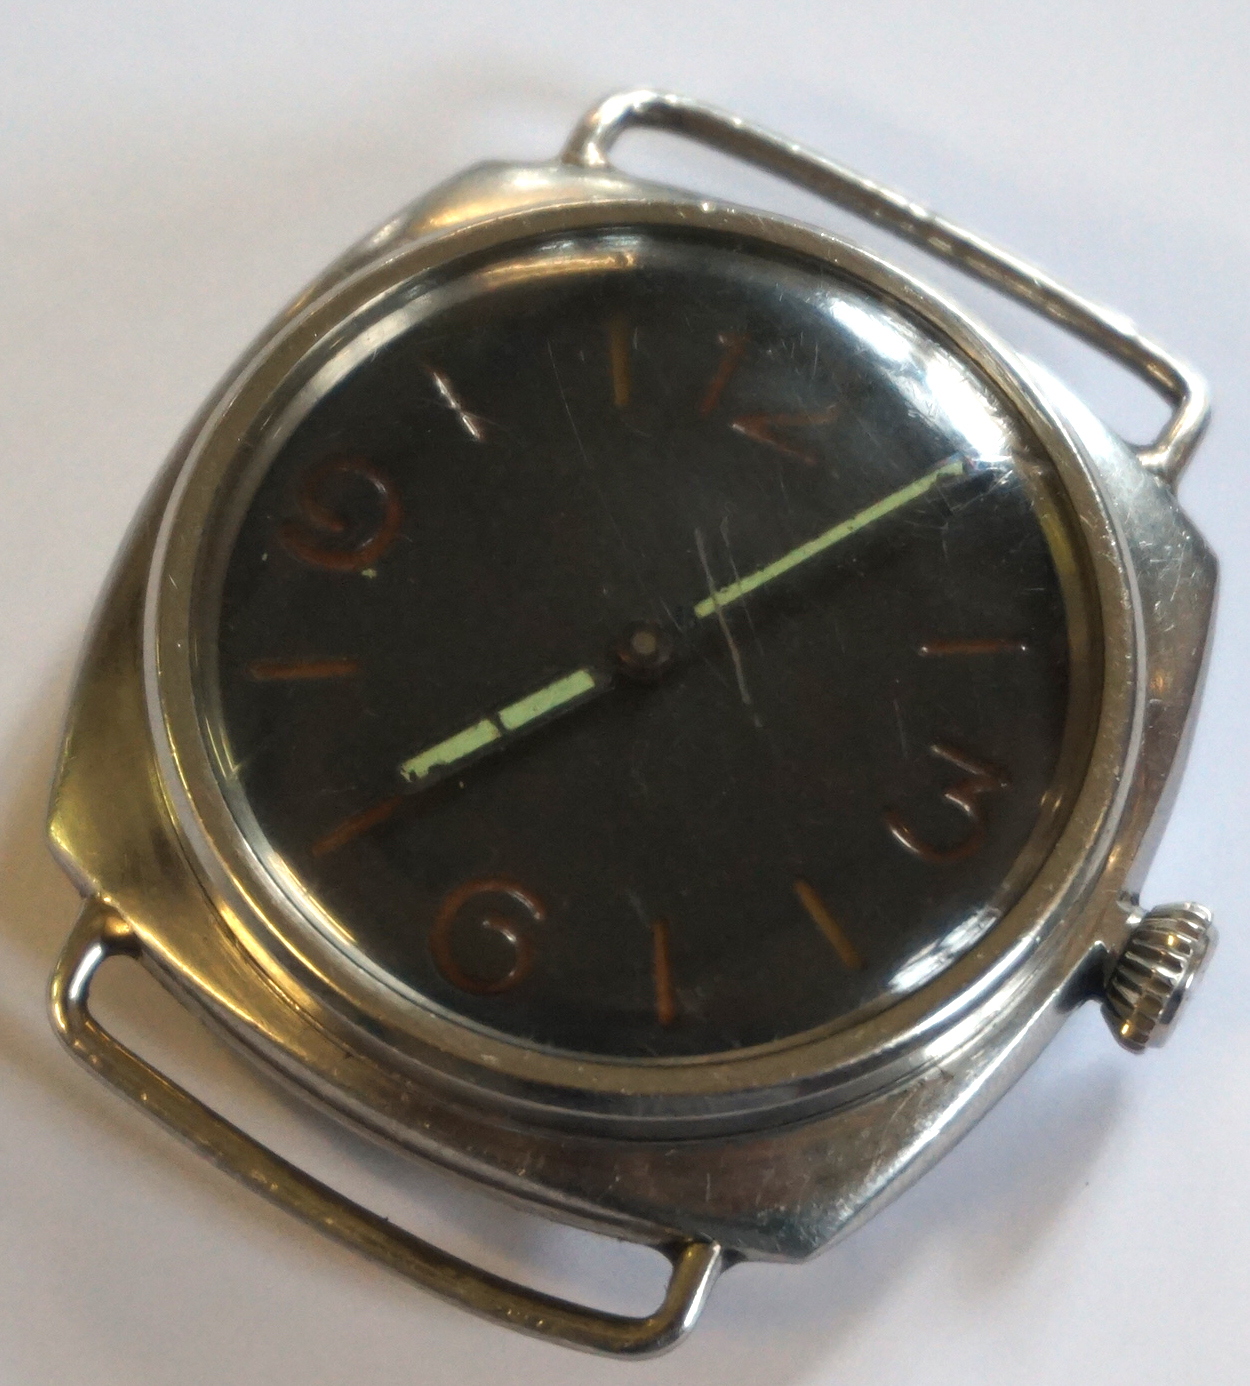 Lot 153 - A Panerai Type D Model 3646 Military Wristwatch With Rolex 17 Rubis movement,